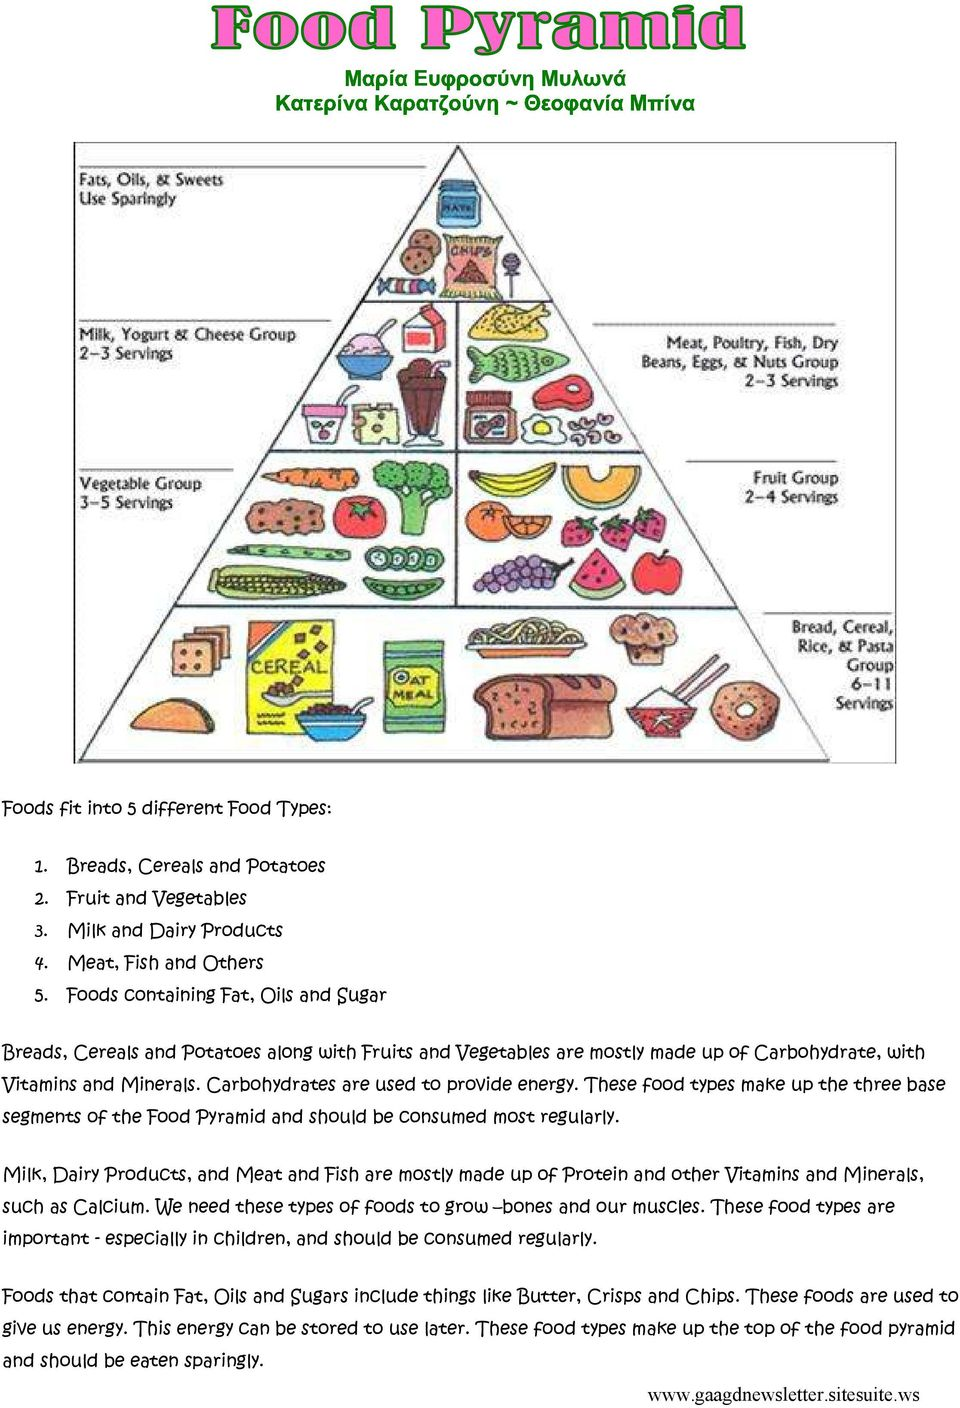 Carbohydrates are used to provide energy. These food types make up the three base segments of the Food Pyramid and should be consumed most regularly.